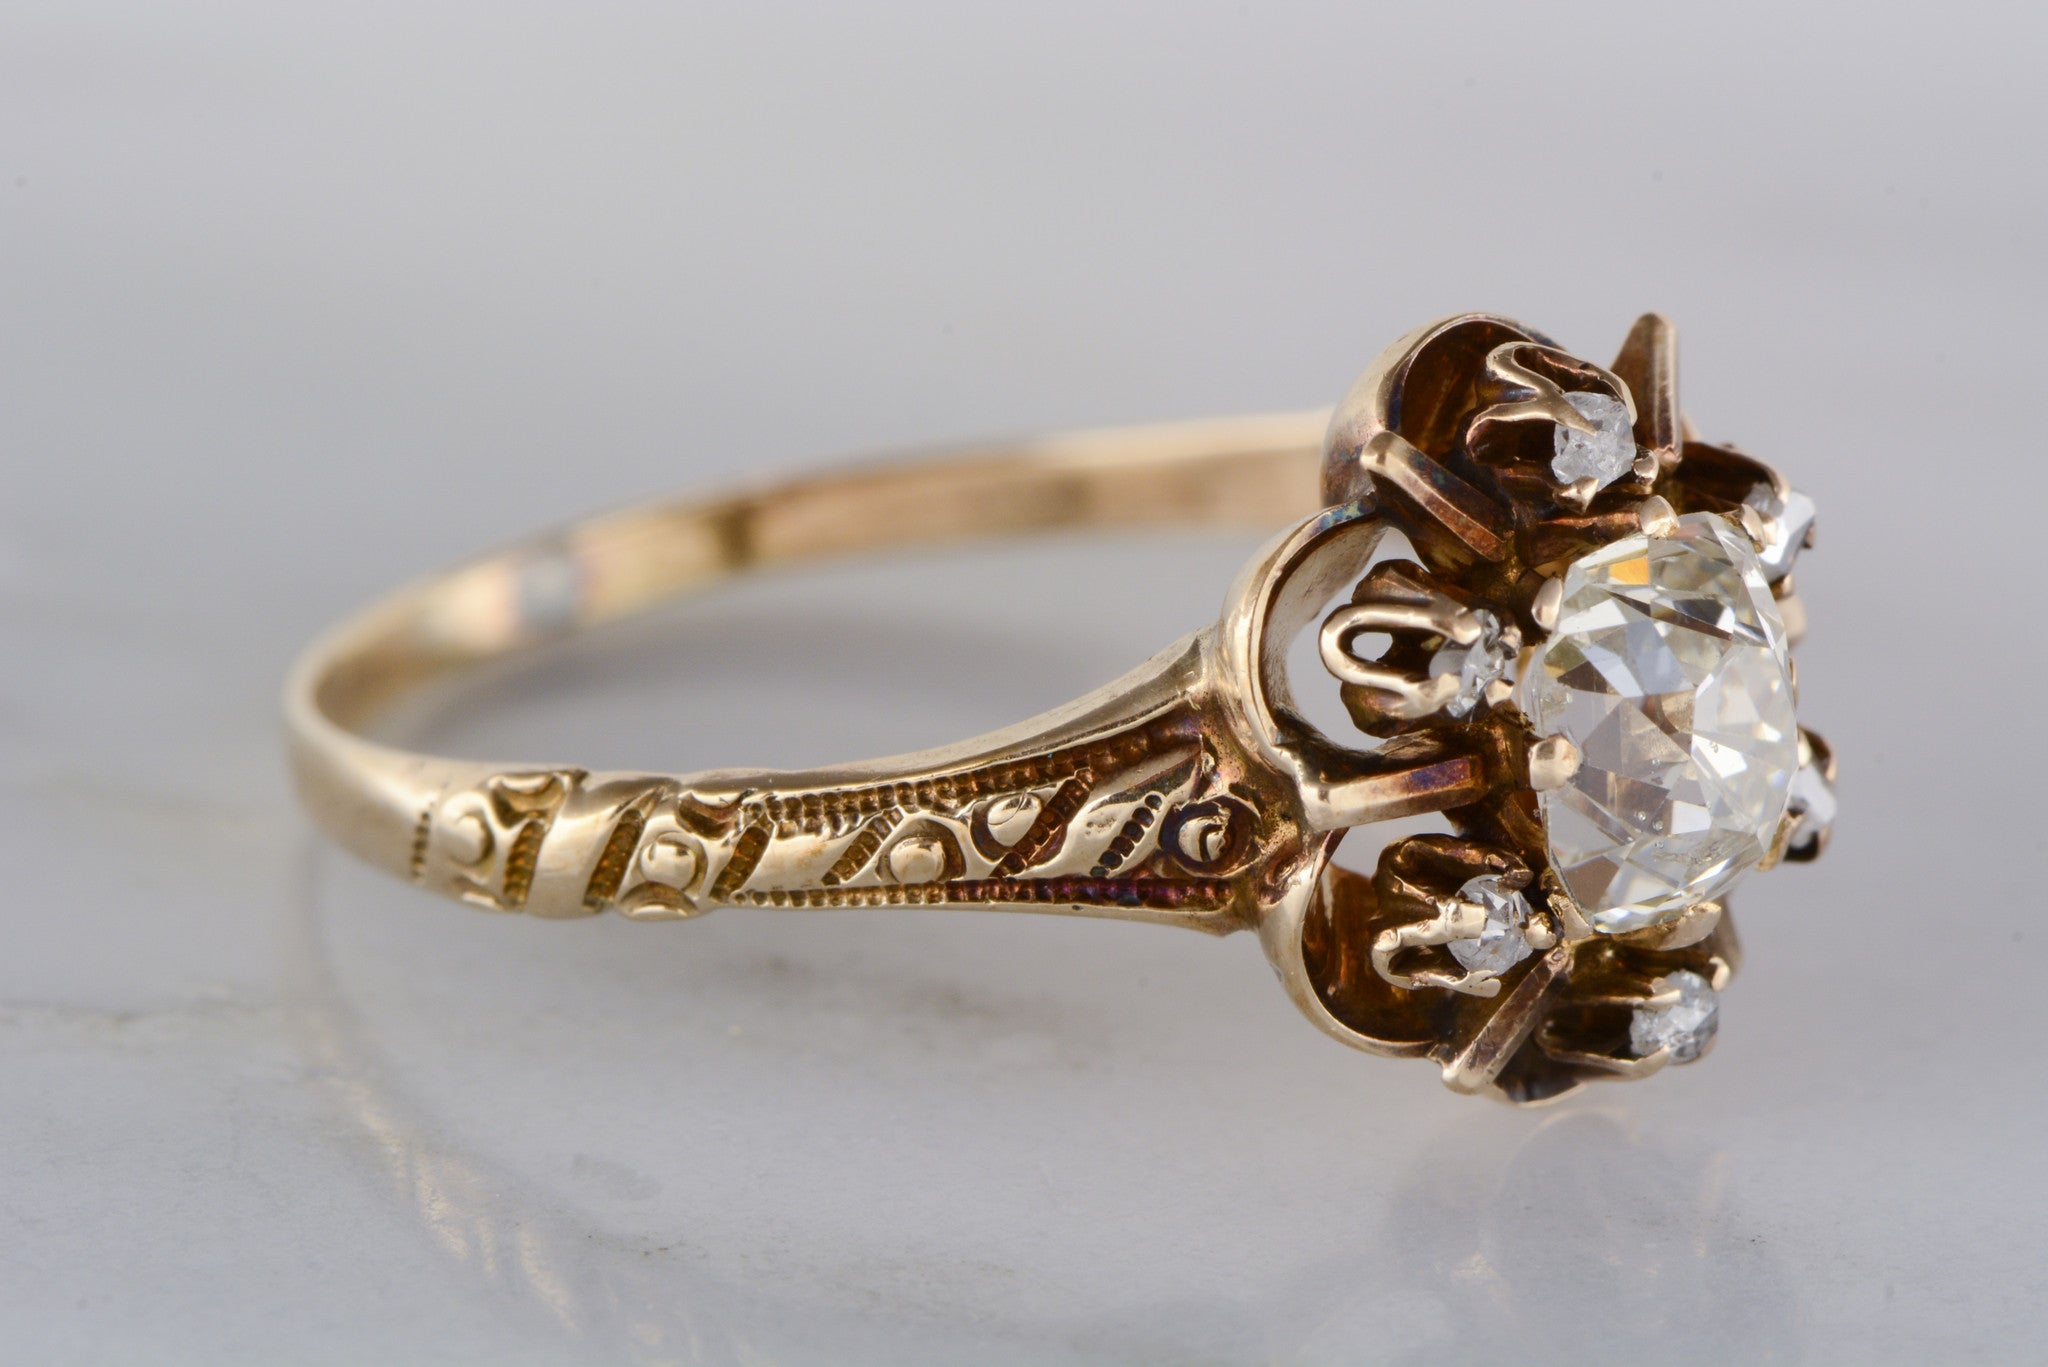 75 Carat Old Mine Cushion Rectangle Cut Diamond In Open Buttercup Rose  Gold Victorian Engagement Ring With Diamond Halo